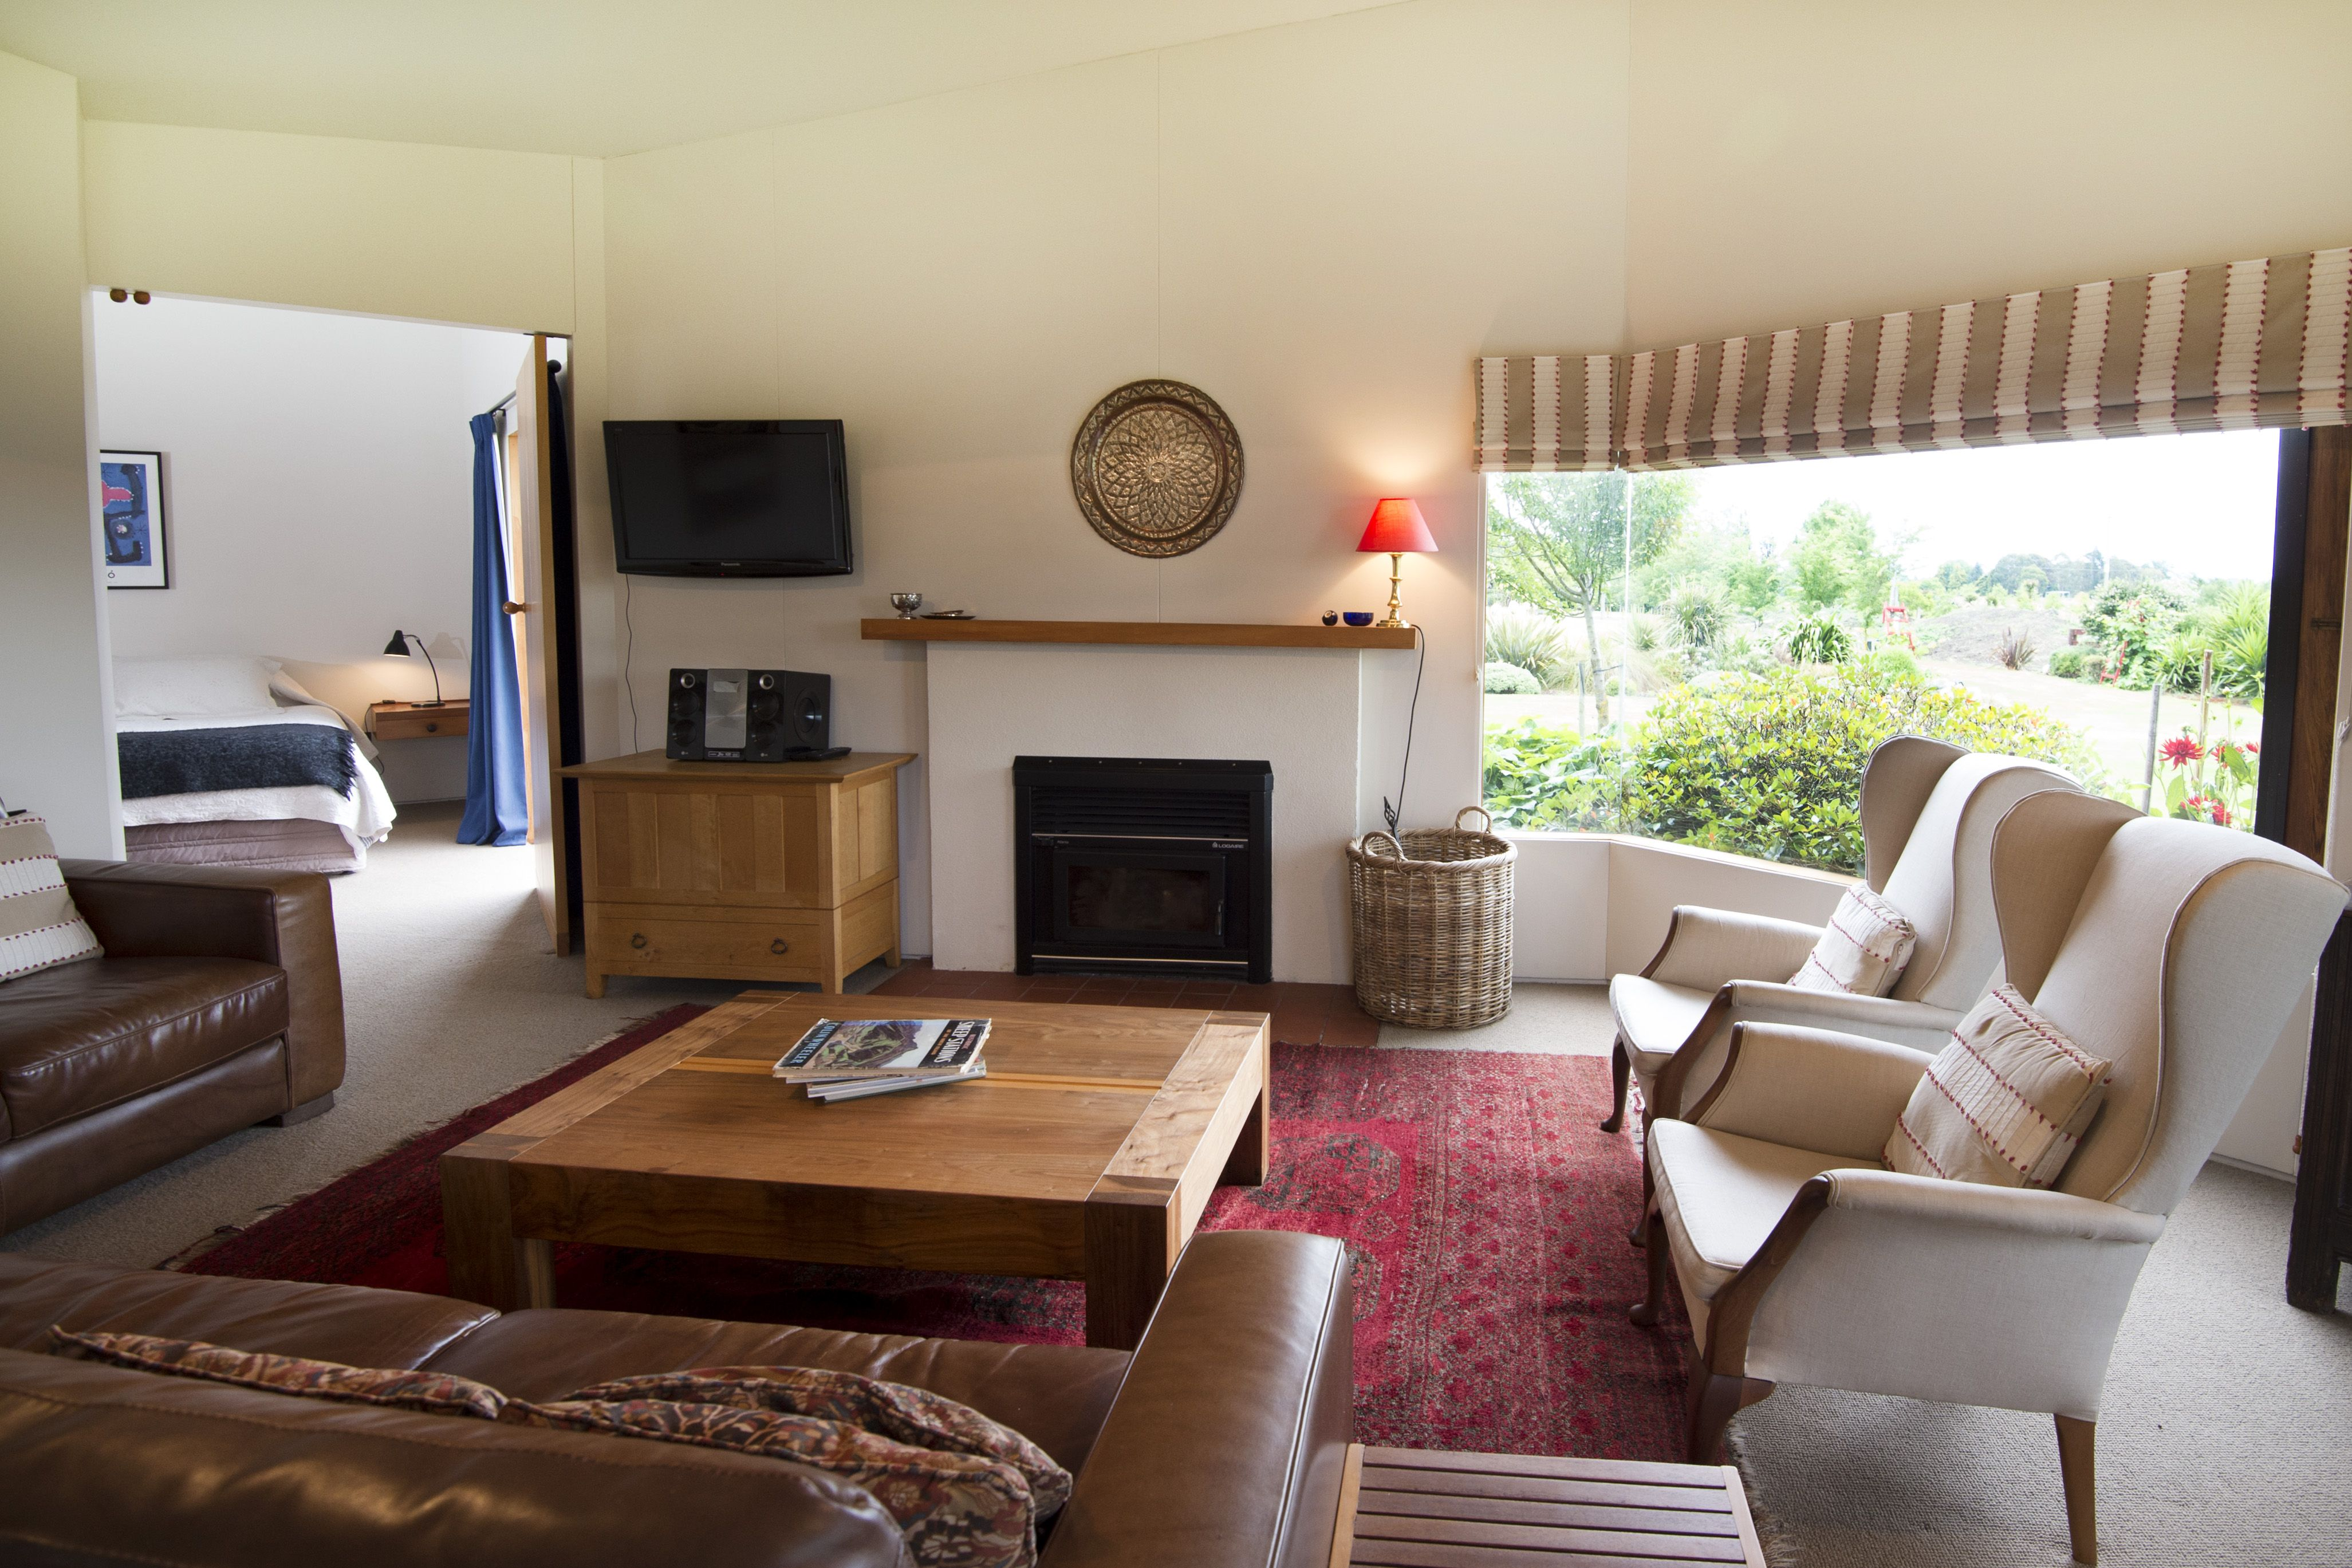 Relax and unwind in your private accommodation at John's House.